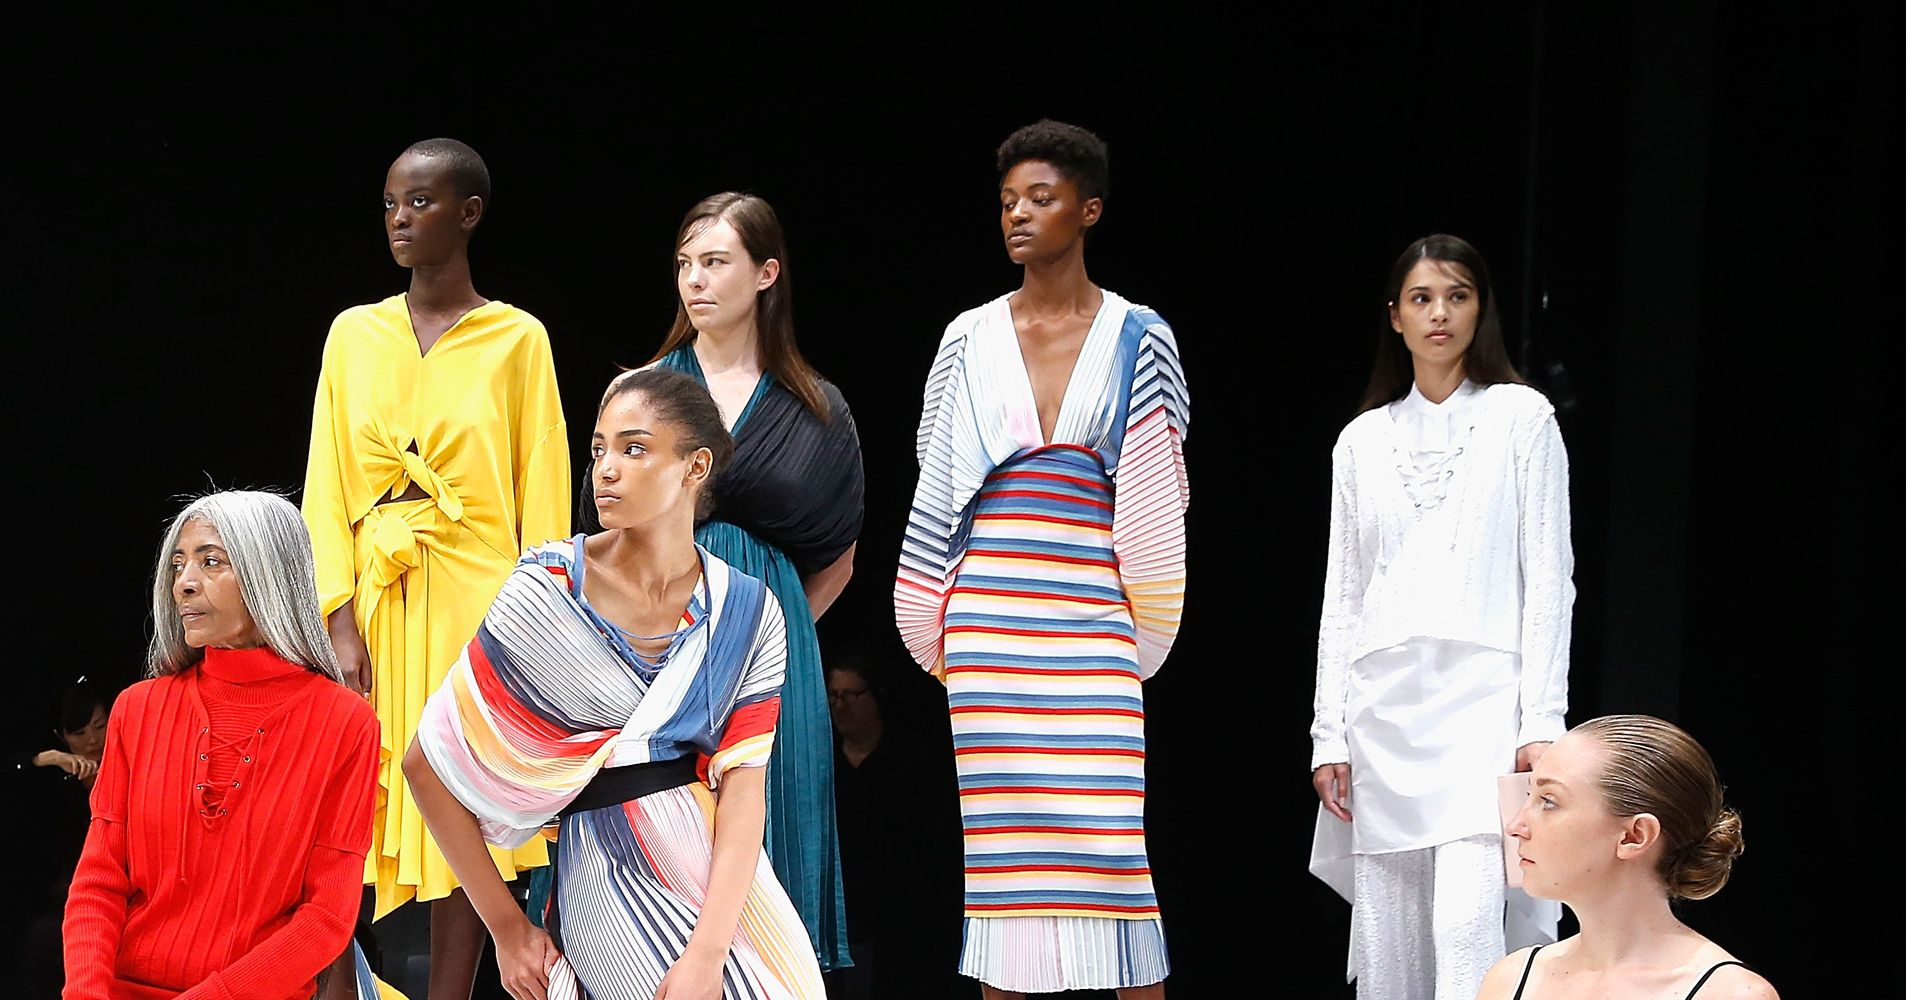 There's Actually Some Good News Coming From The Fashion World